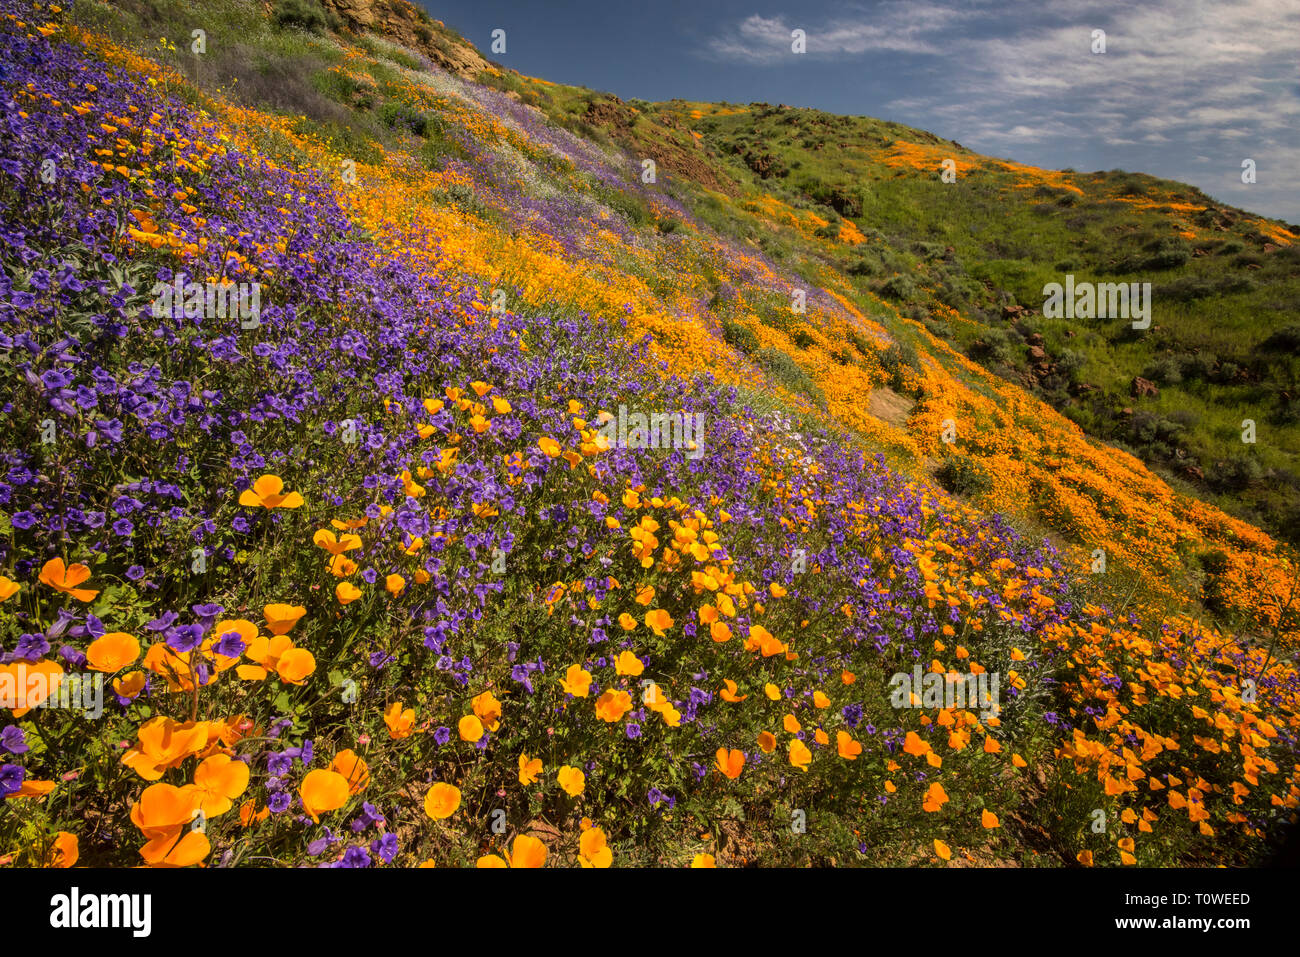 Super Bloom of poppies and other wildflowers at Lake Elsinore, California, USA March, 2019 - Stock Image